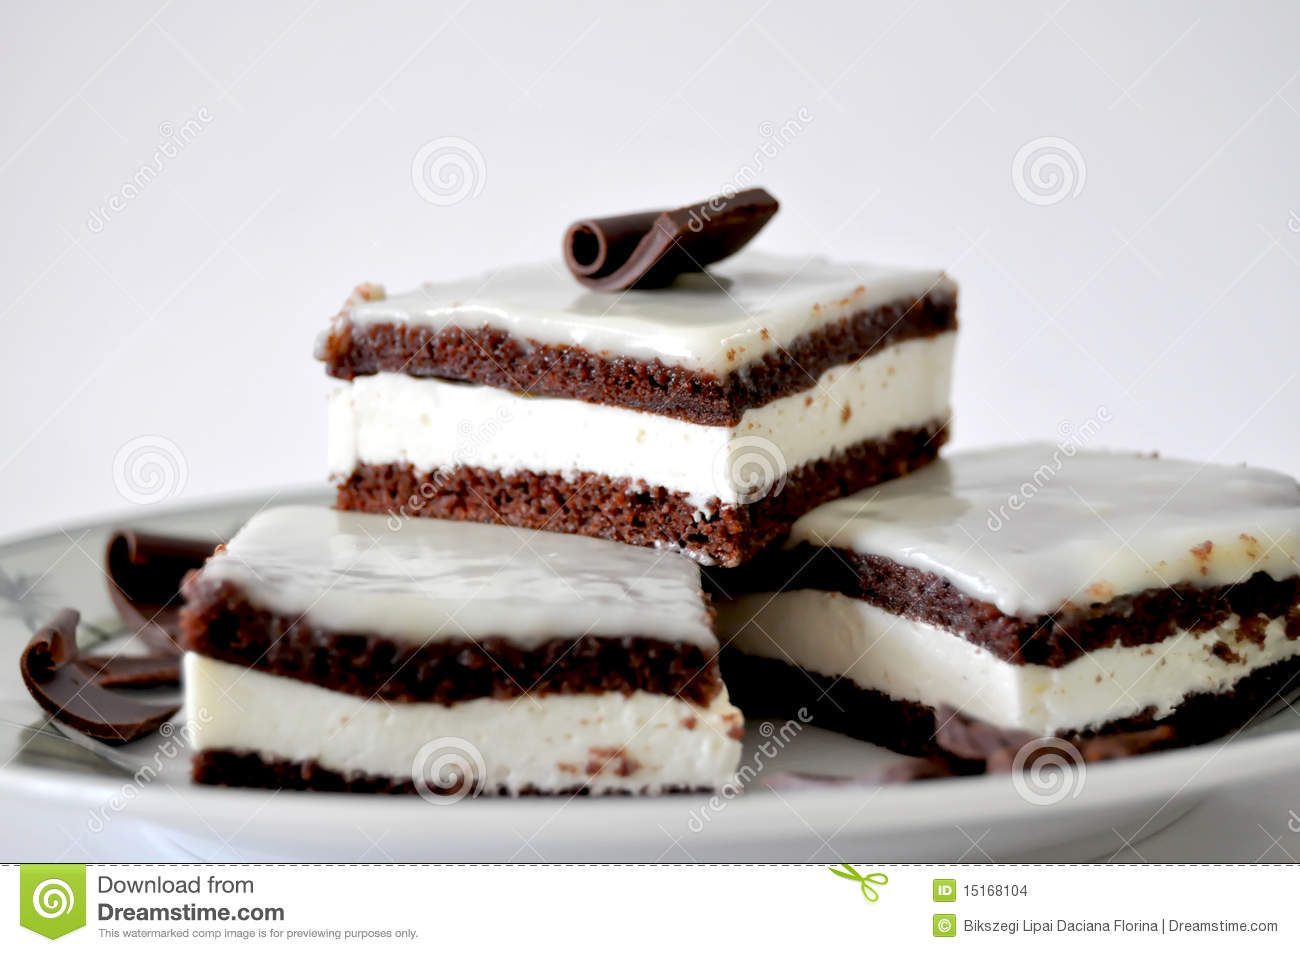 Cake With Chocolate Milk : Chocolate Cake With Milk Cream Stock Images - Image: 15168104